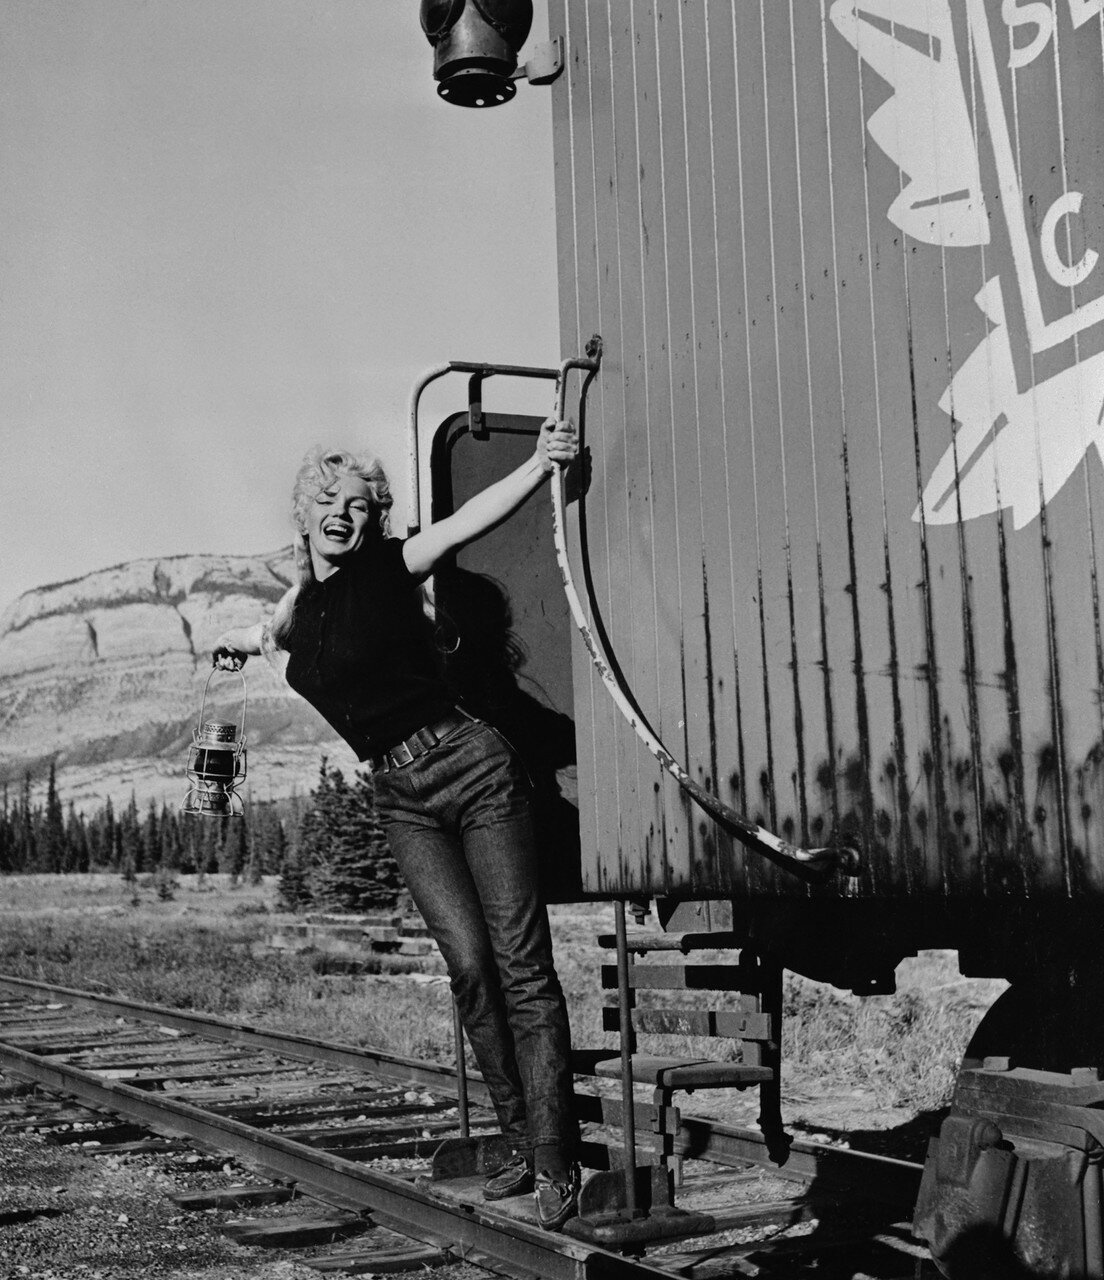 Marilyn Monroe with One Arm on Caboose